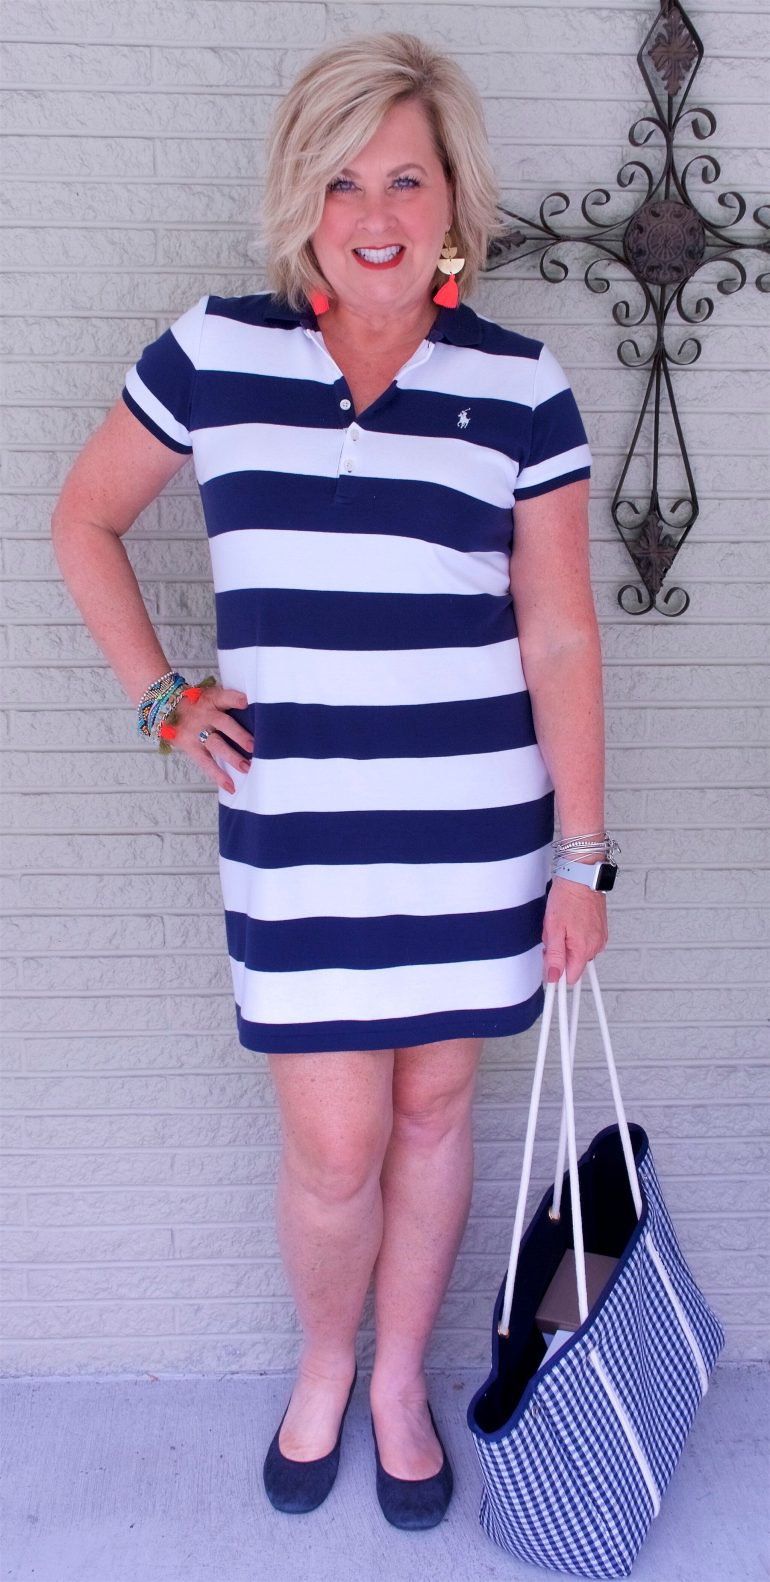 50 IS NOT OLD   A STRIPED T-SHIRT DRESS IS CLASSIC AND COMFORTABLE   FASHION OVER 40